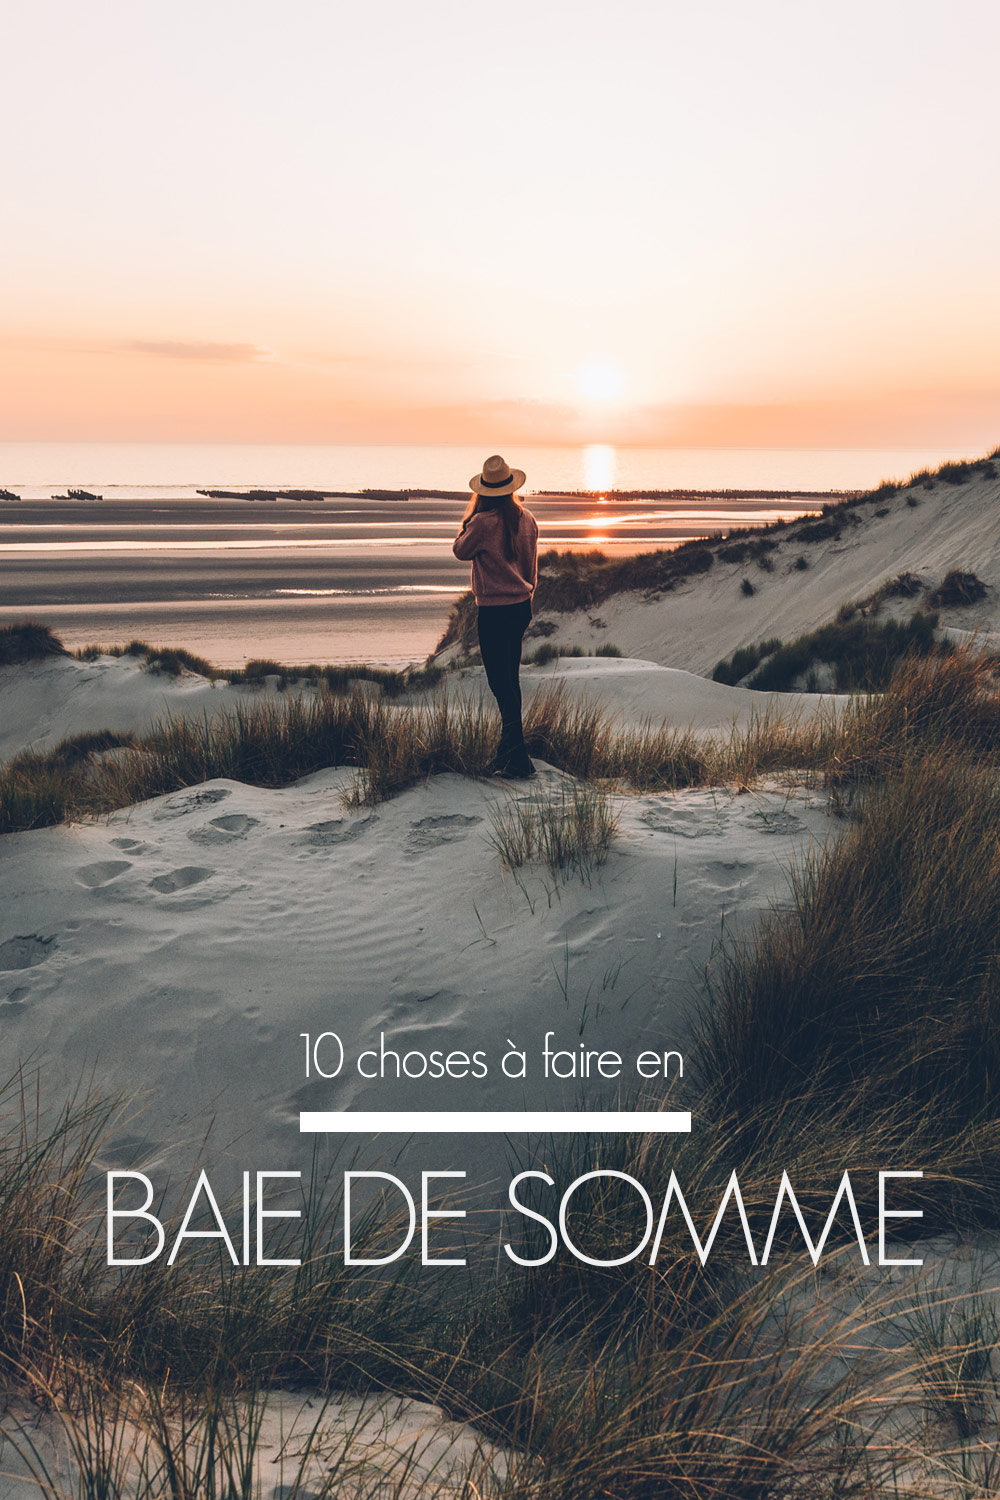 10 choses à faire en Baie de Somme